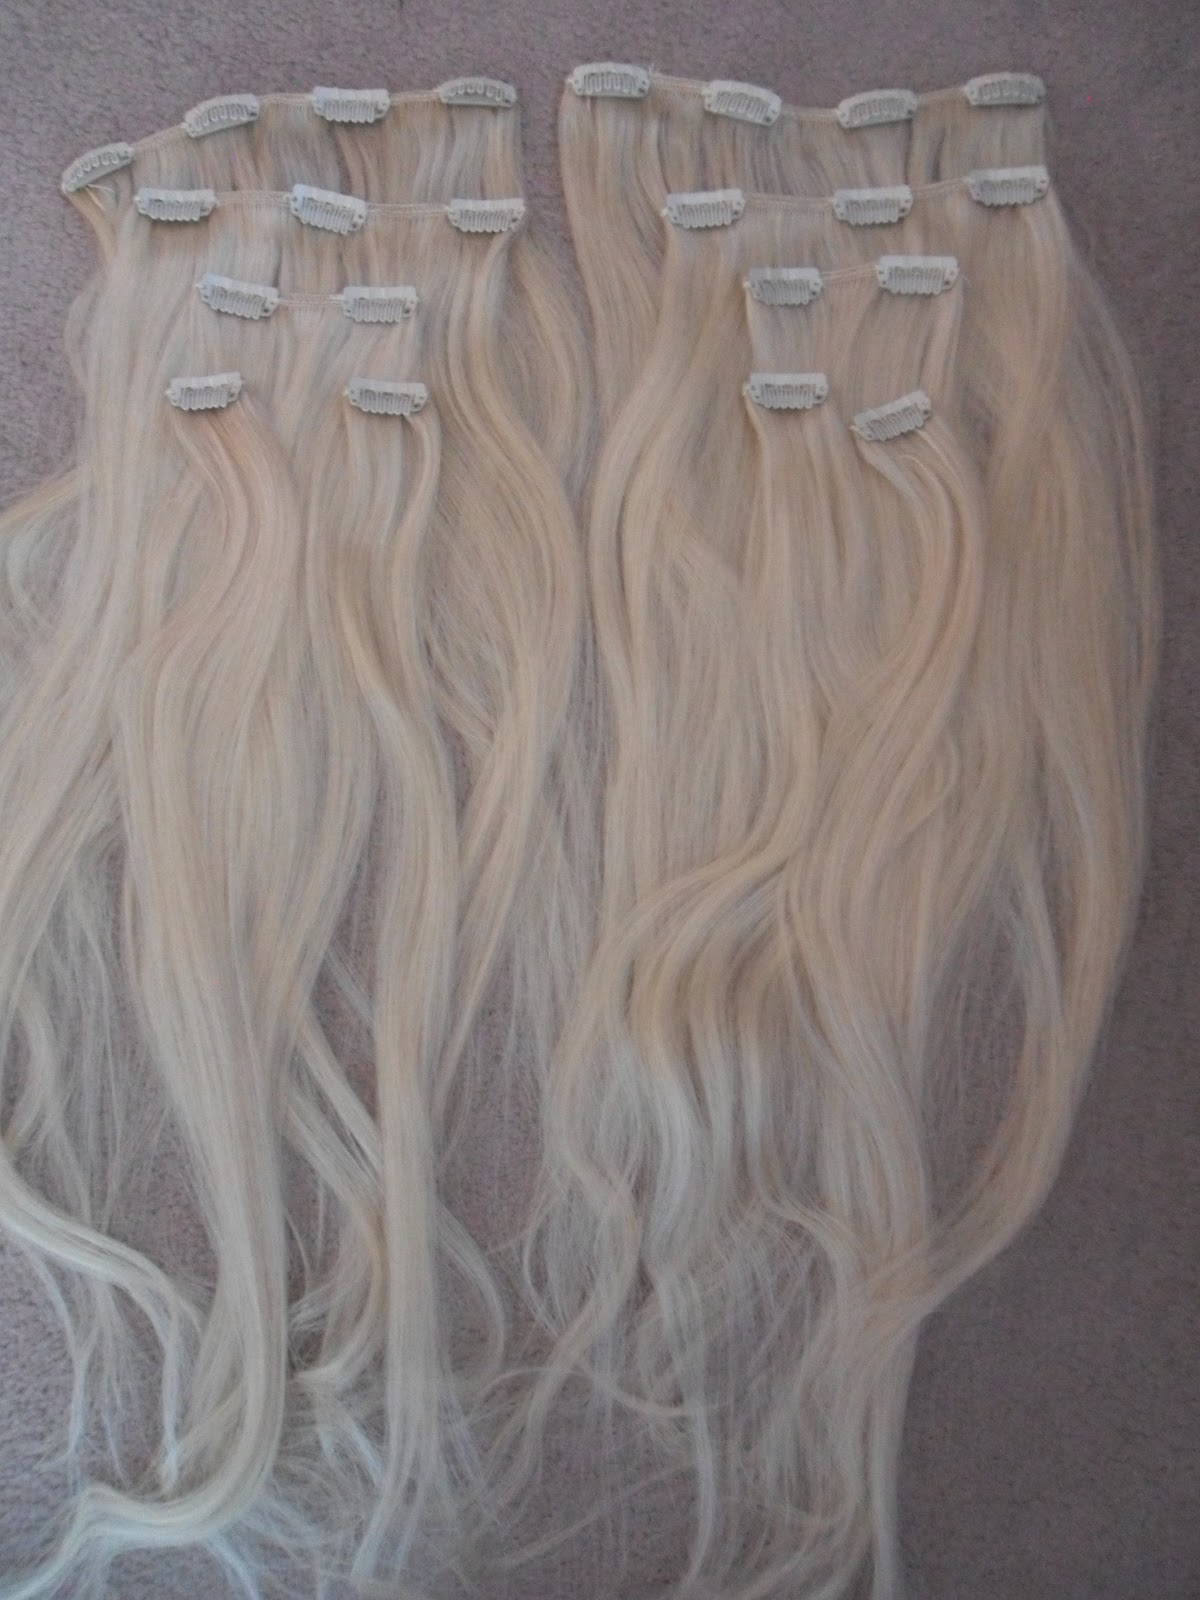 Lauras Little Loves Foxy Locks Clip In Extensions Review